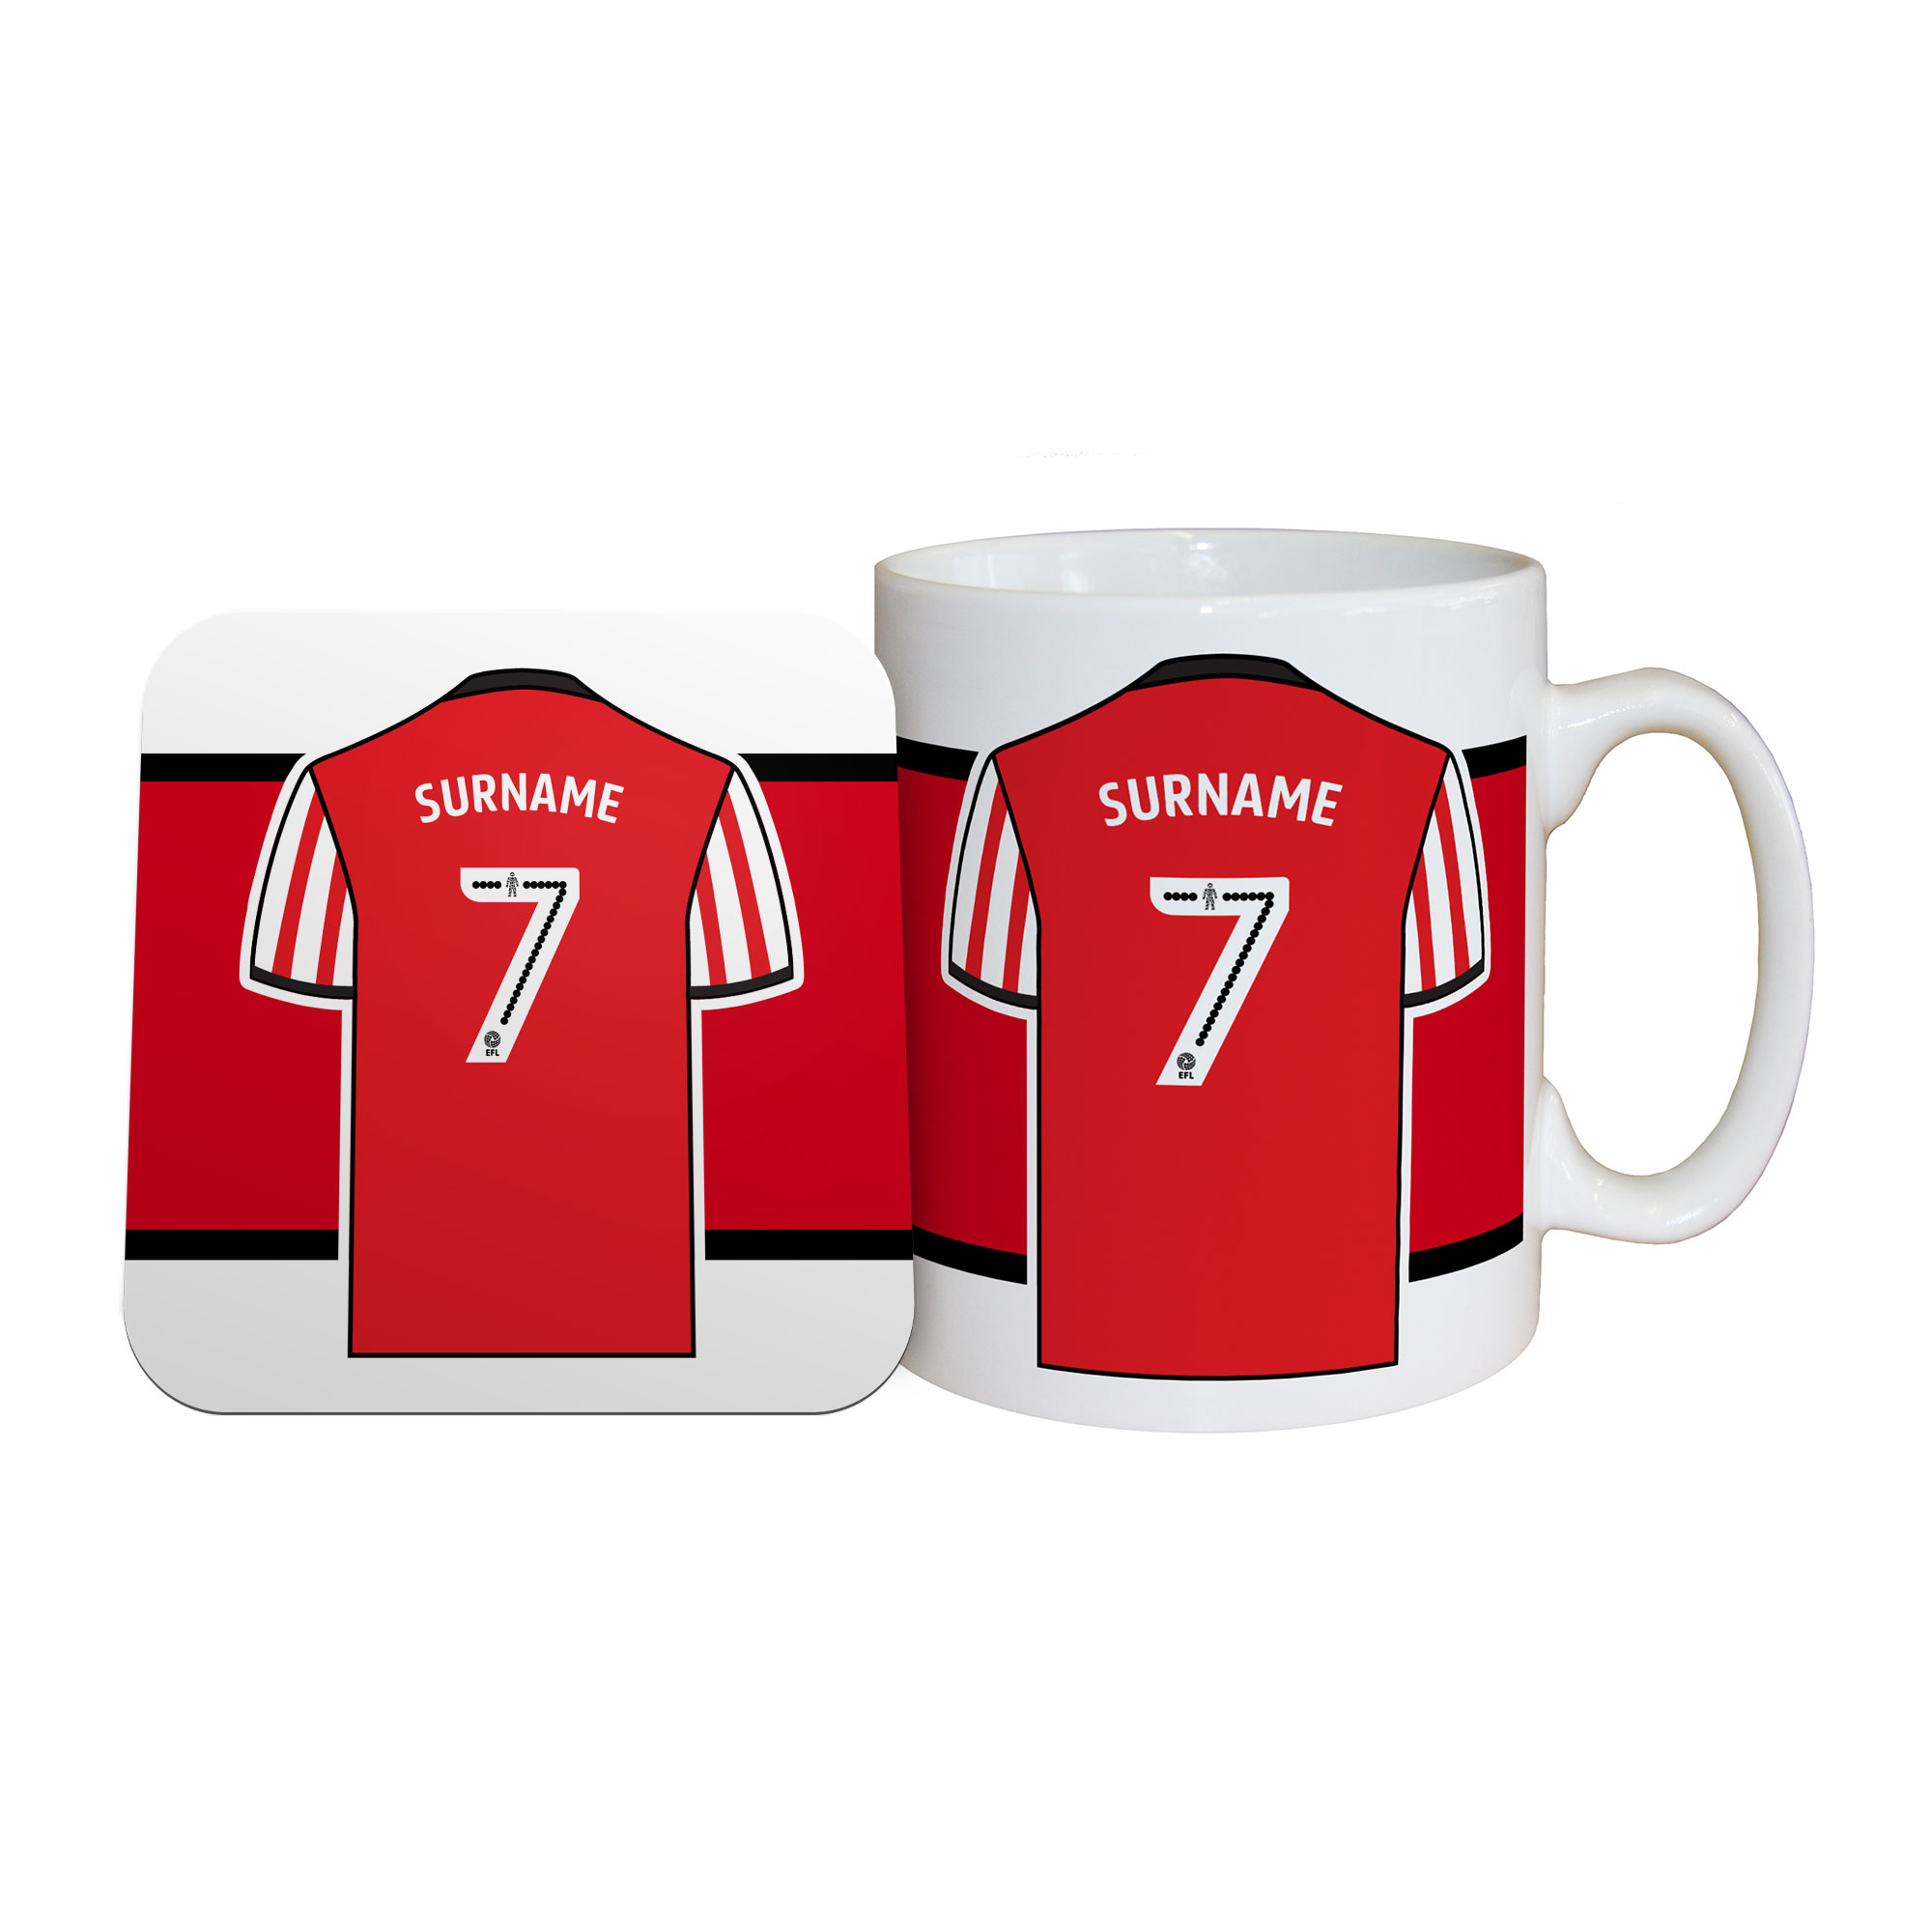 Sunderland Shirt Mug & Coaster Set